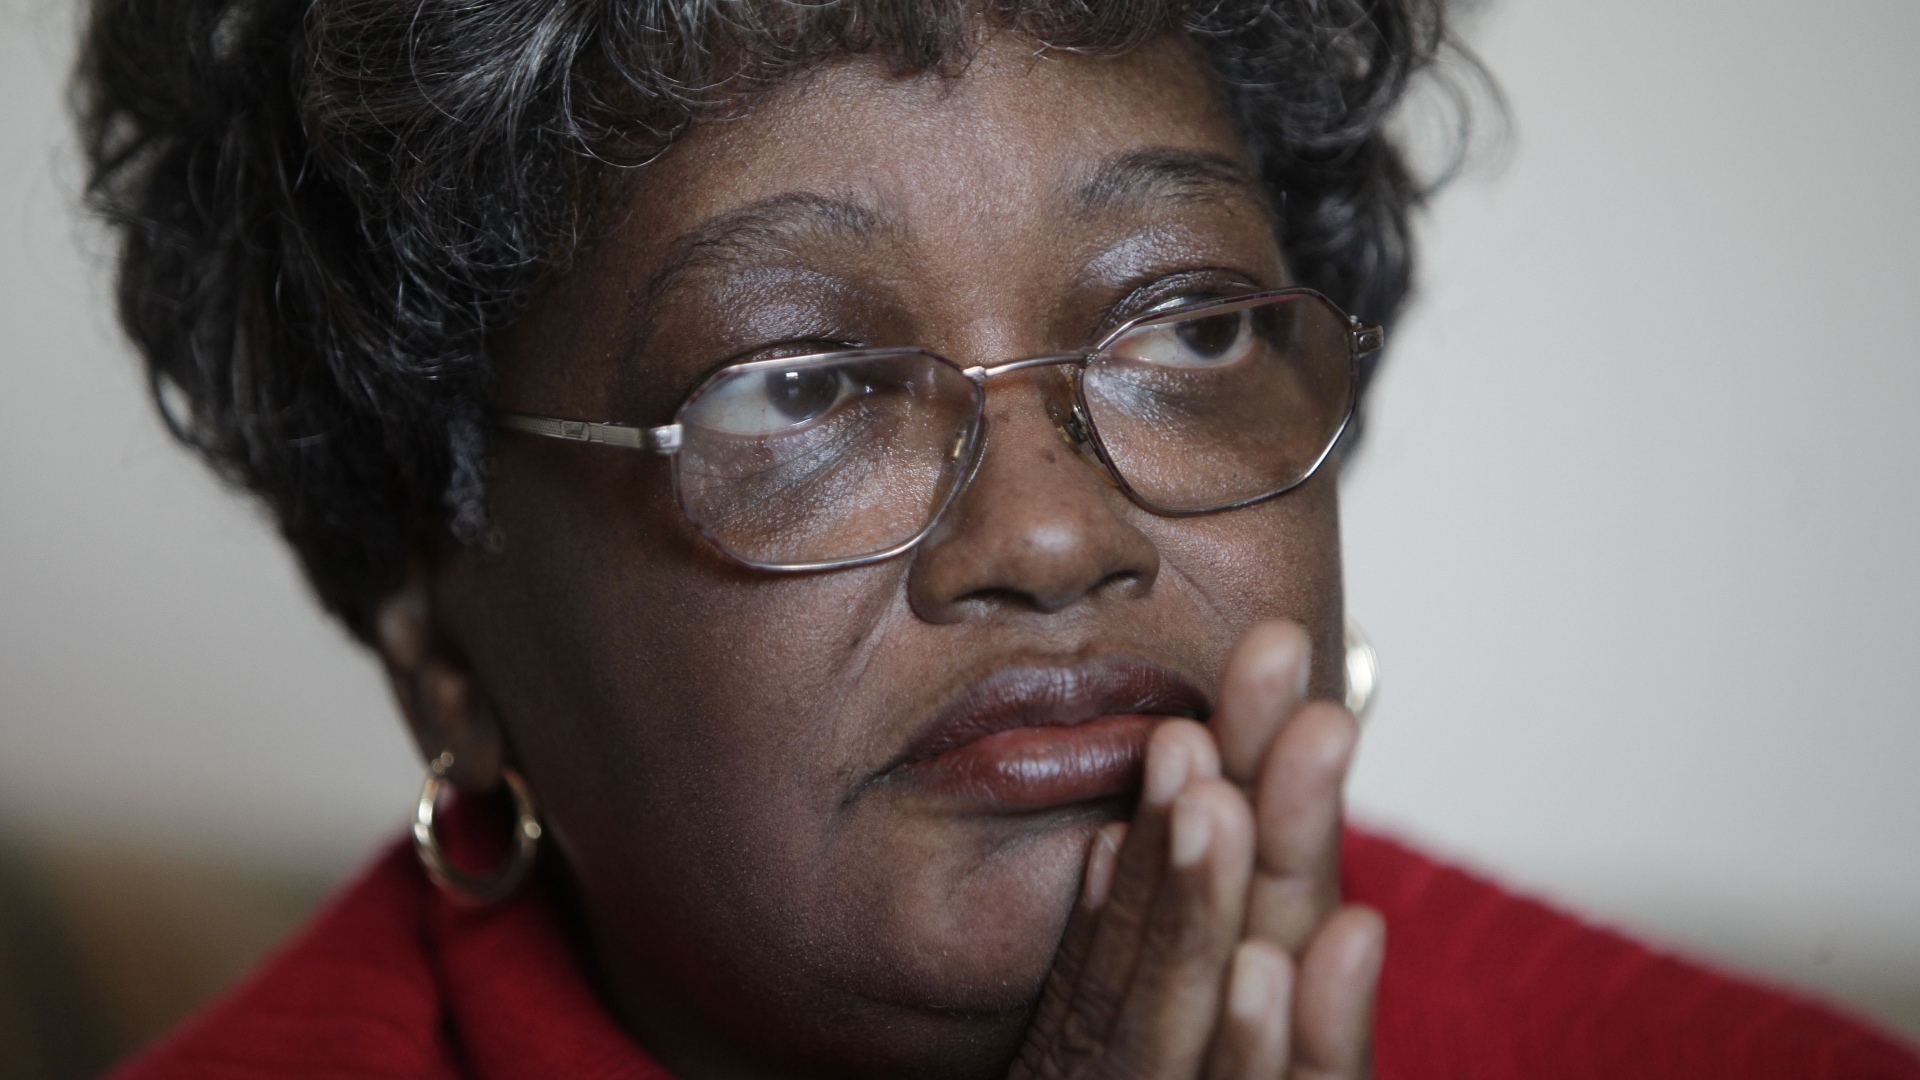 Bronx resident Claudette Colvin in 2009. (Credit: Julie Jacobson/AP Photo)